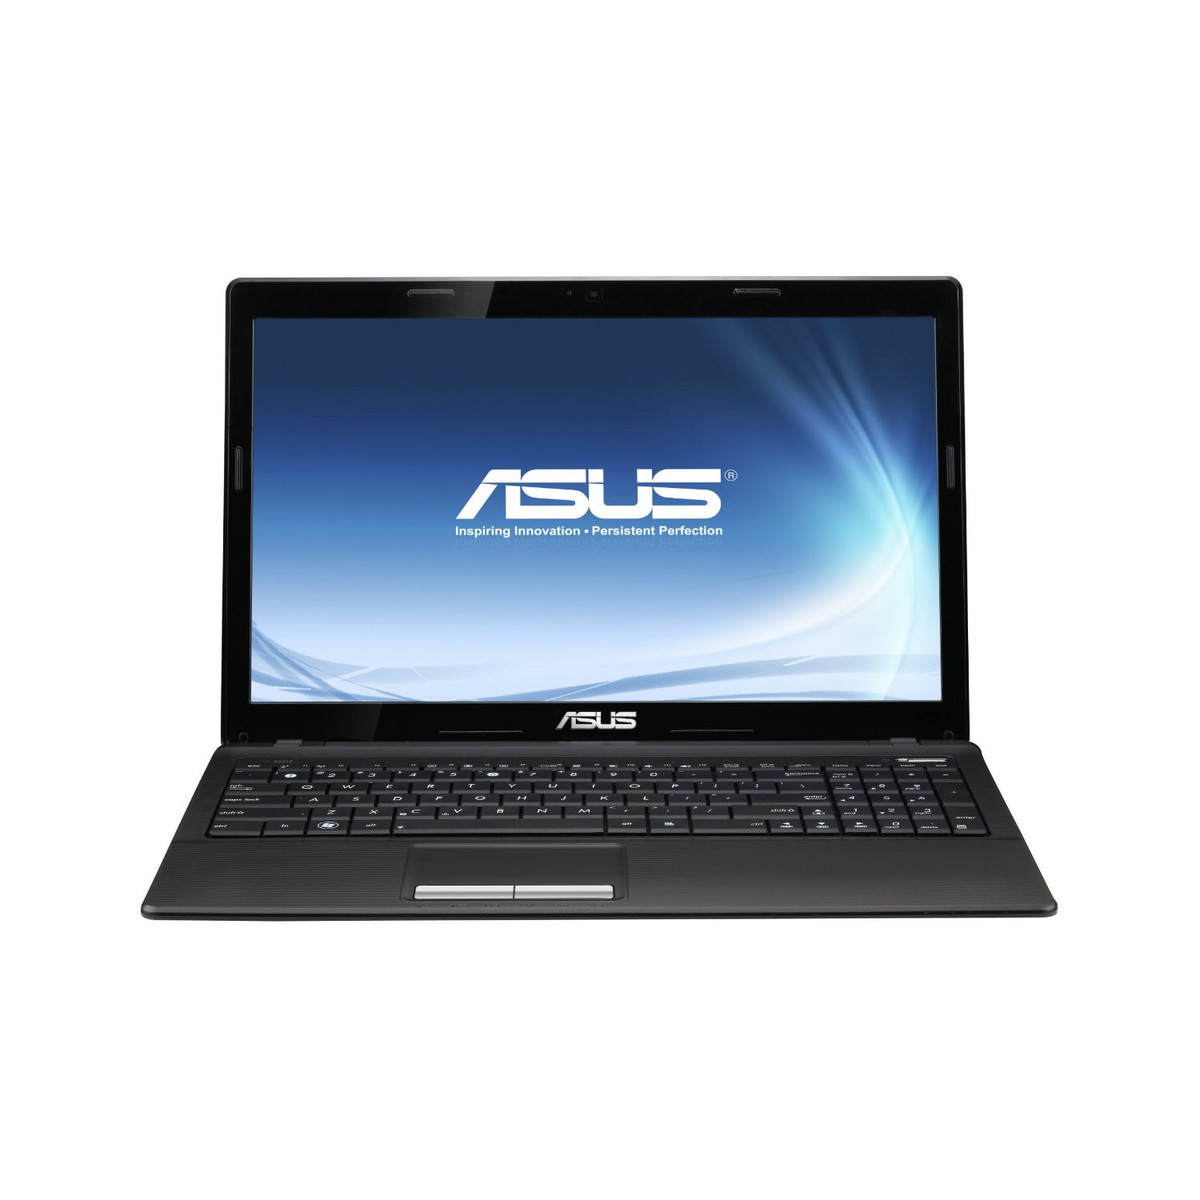 ASUS K53BR AMD Graphics Drivers for Windows Download